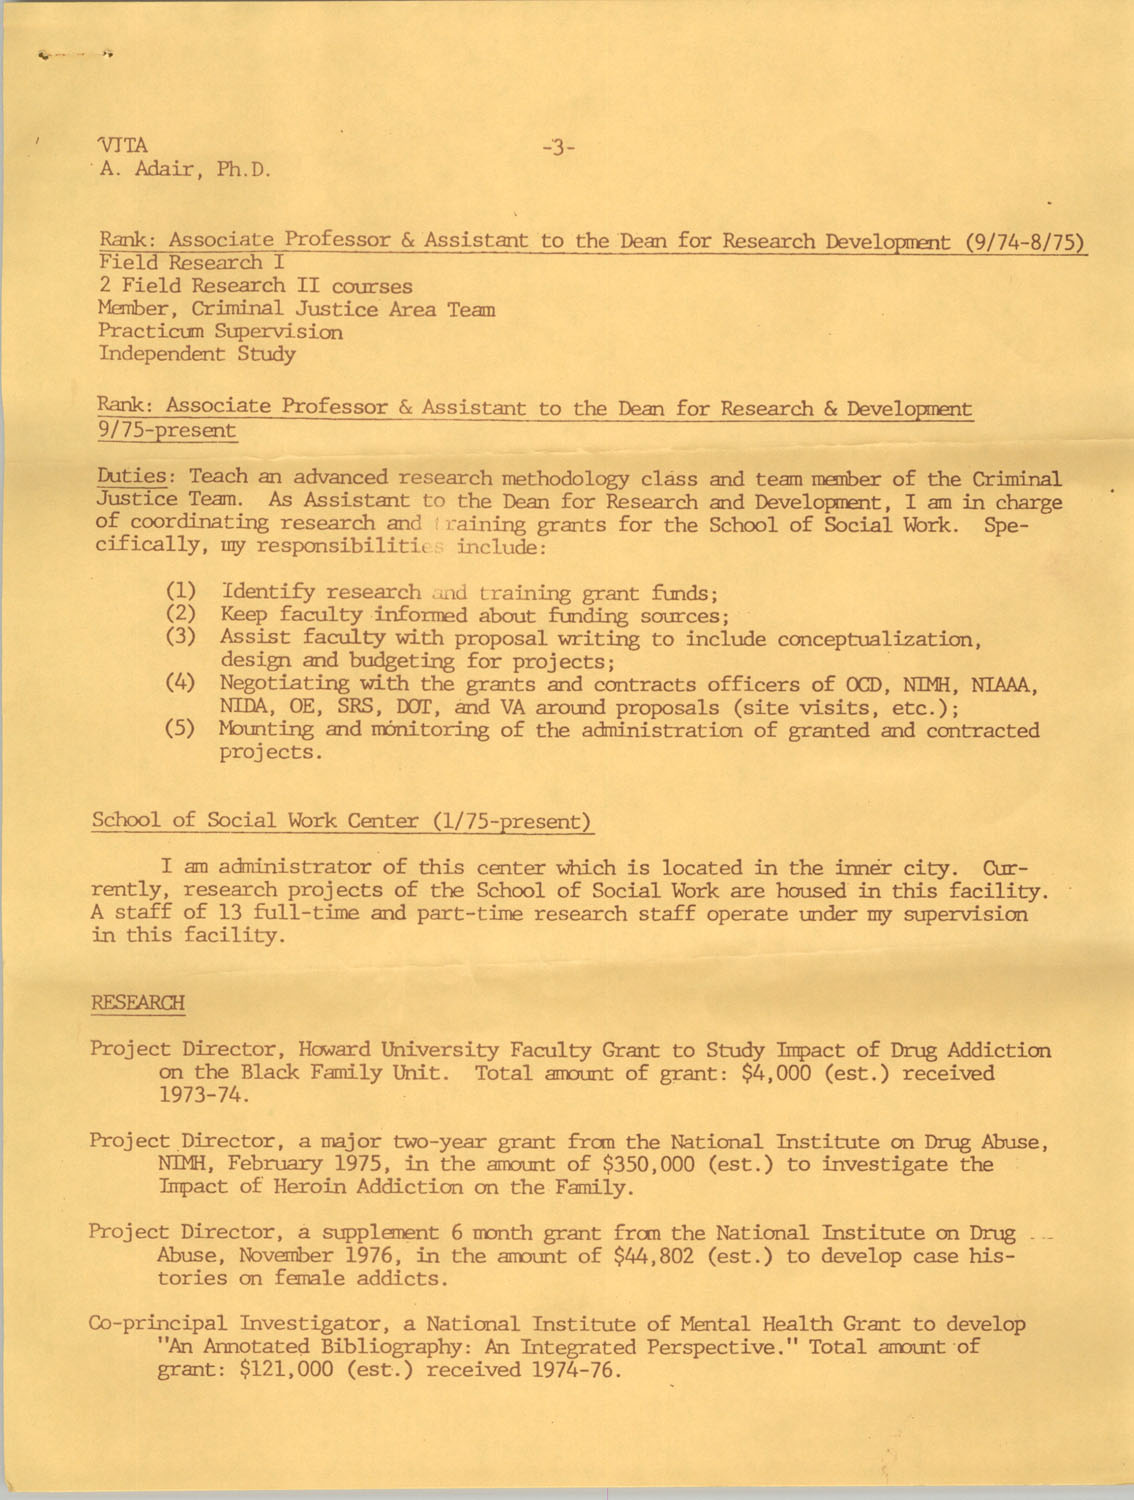 Alvis V. Adair Resume, Page 3